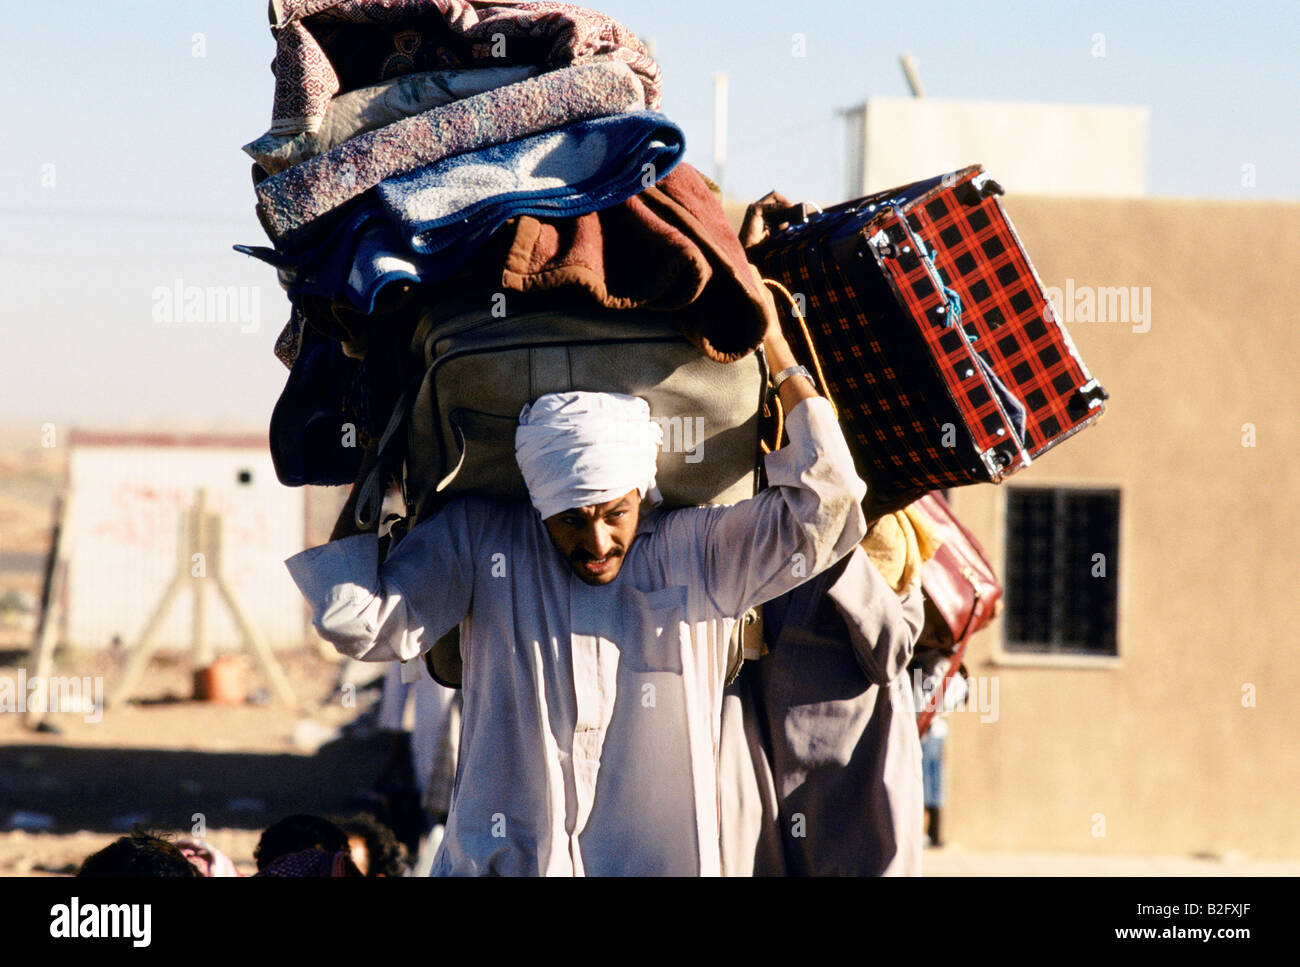 refugee man carrying all his luggage, during gulf crisis - Stock Image